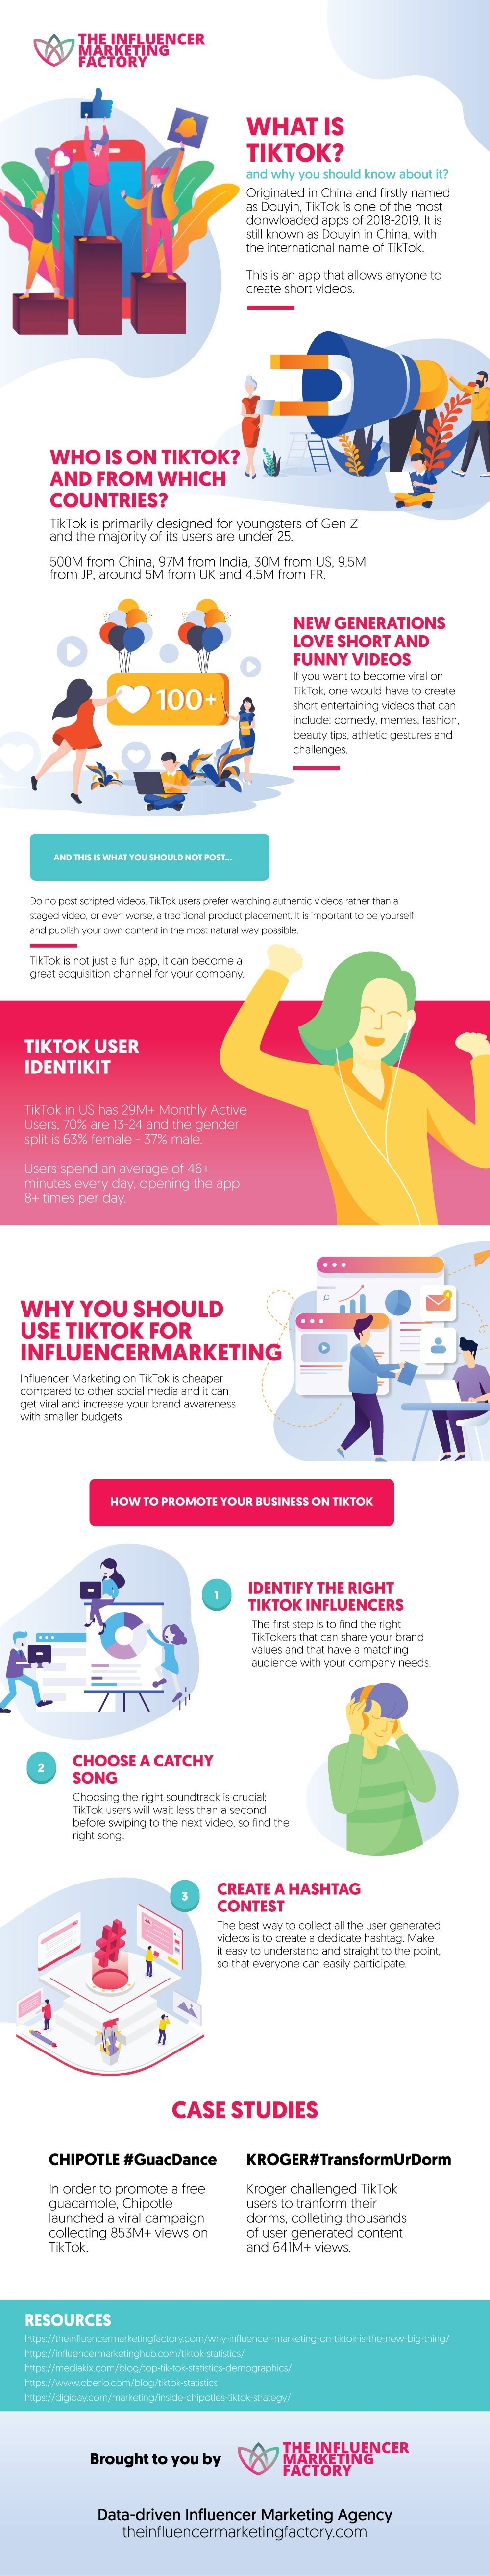 Why Influencer Marketing On TikTok Is The New Big Thing #infographic